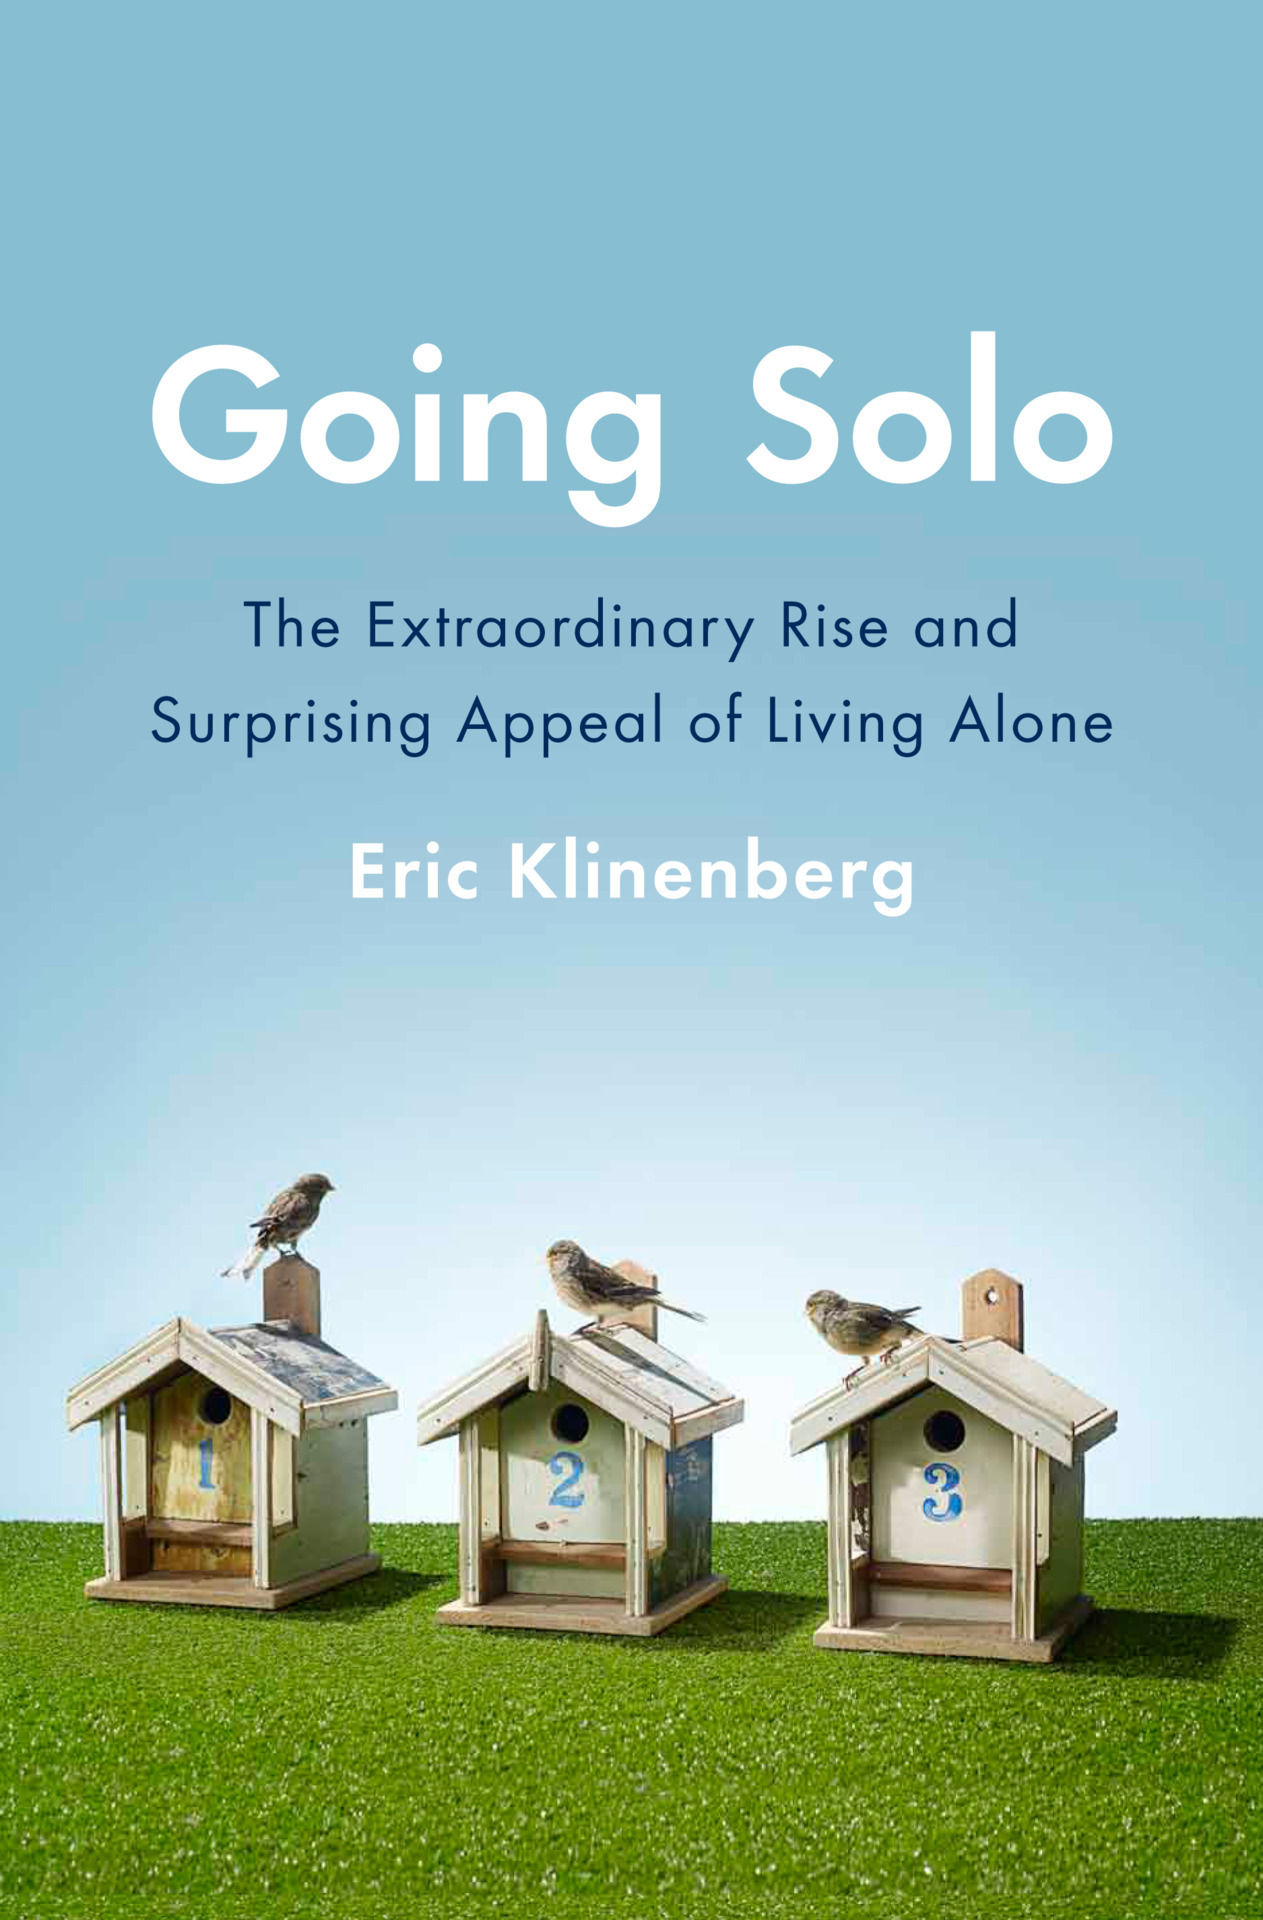 i am an island. (via Going Solo: A Brief History of Living Alone and the Enduring Social Stigma Around Singletons | Brain Pickings)